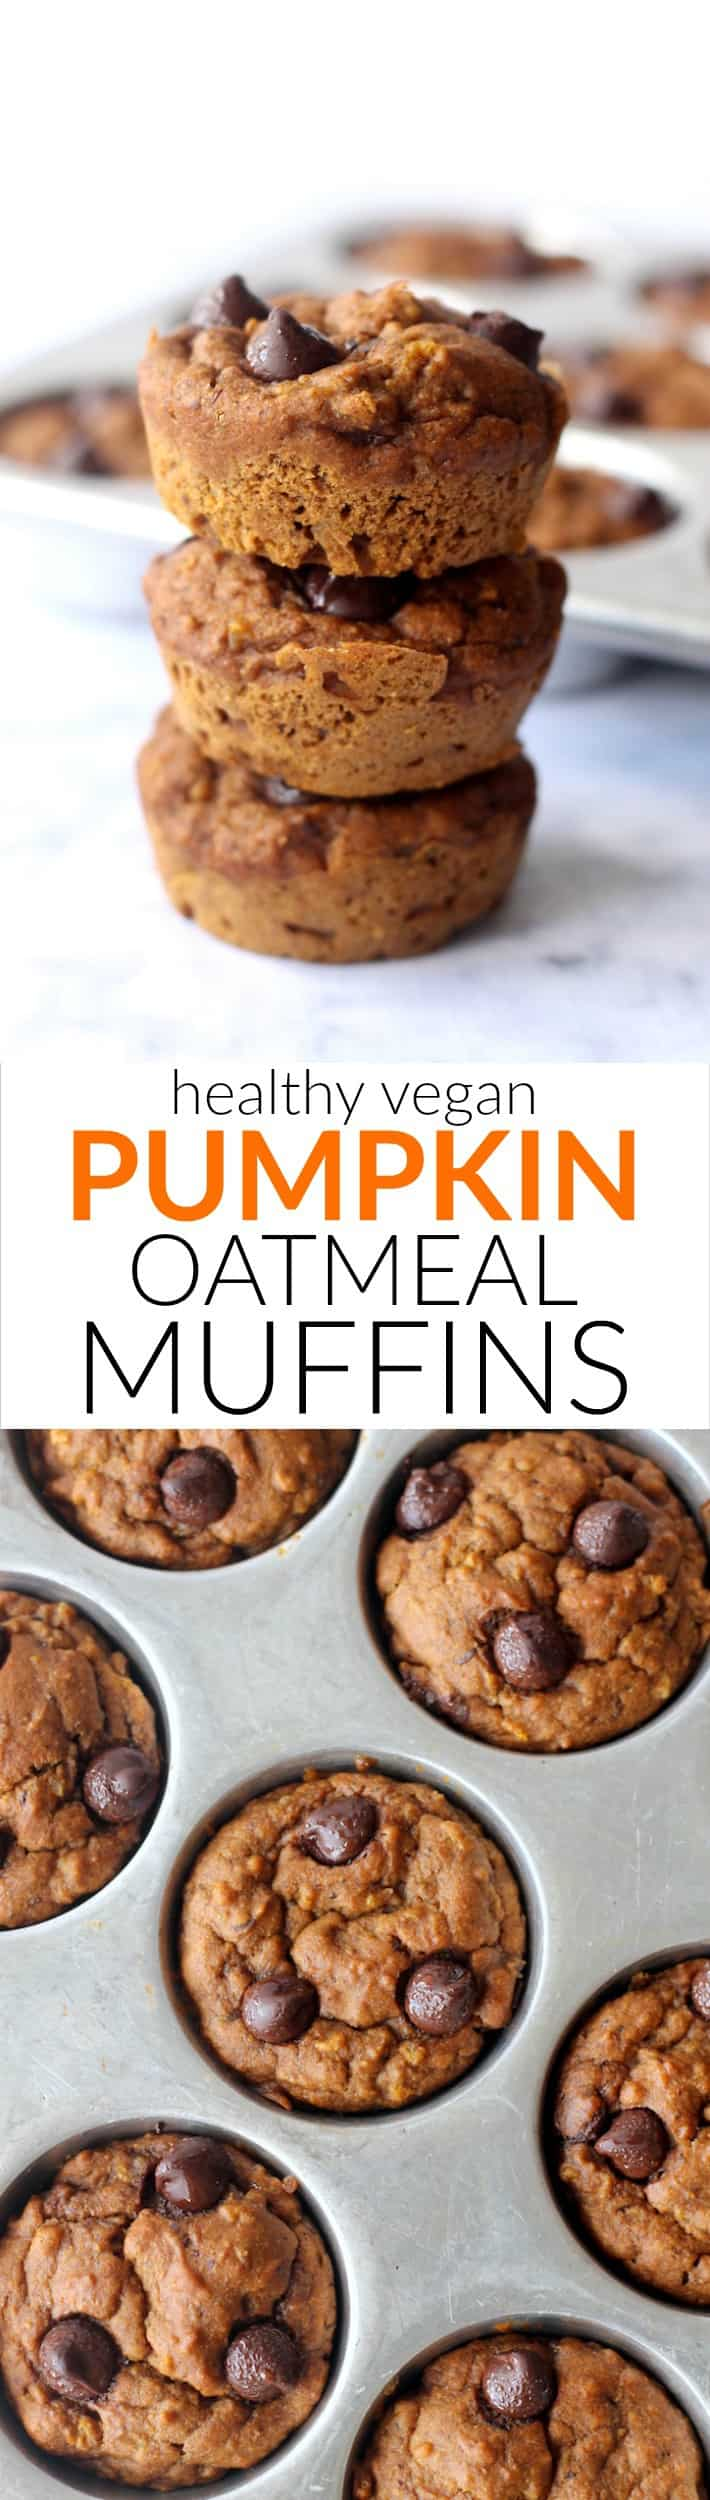 These moist and delicious Vegan Pumpkin Oatmeal Muffins are 100% whole grain and kid-approved. They make a great healthy breakfast or grab-and-go snack!